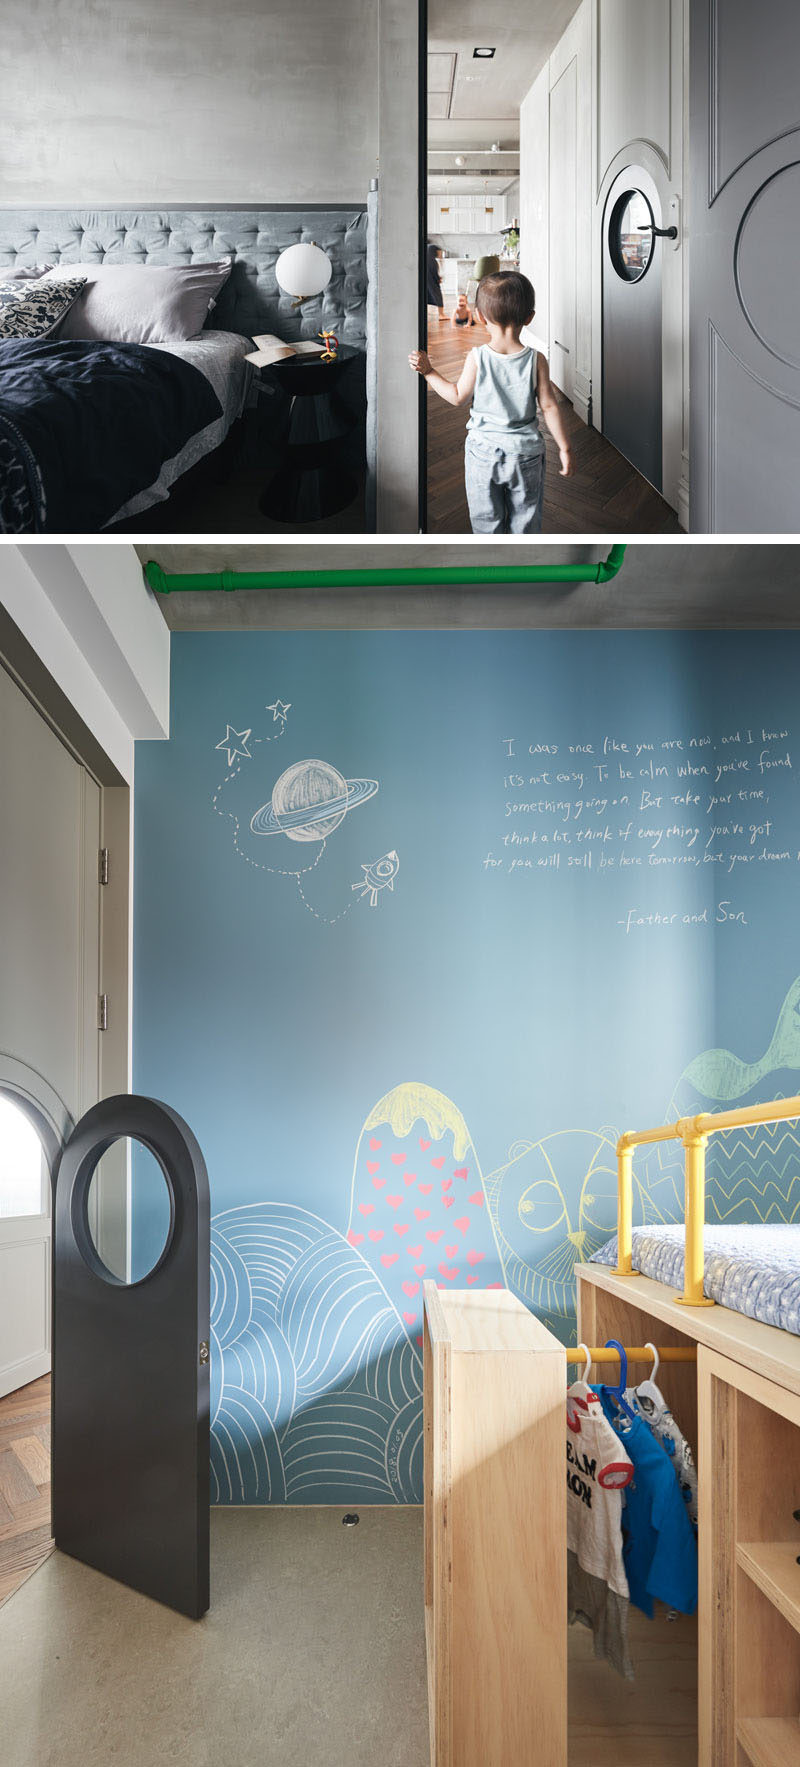 This kid's bedroom has a custom sized door within the door for the child to gain access to their room. #Door #KidsDoor